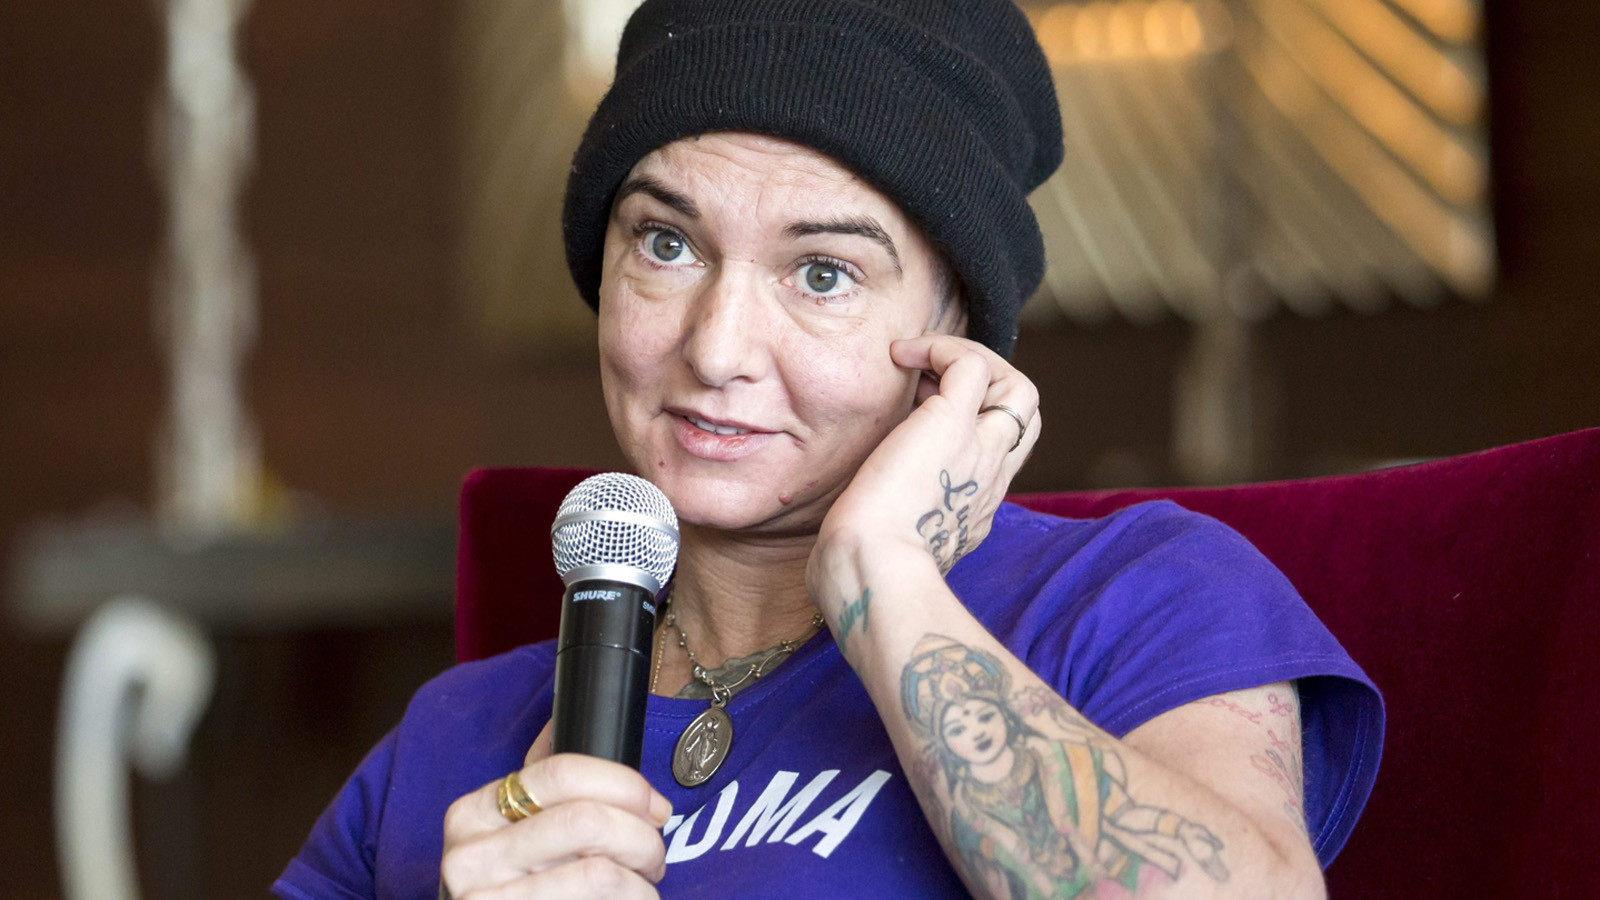 Sinead O'Connor pleads for help, says she's living in motel